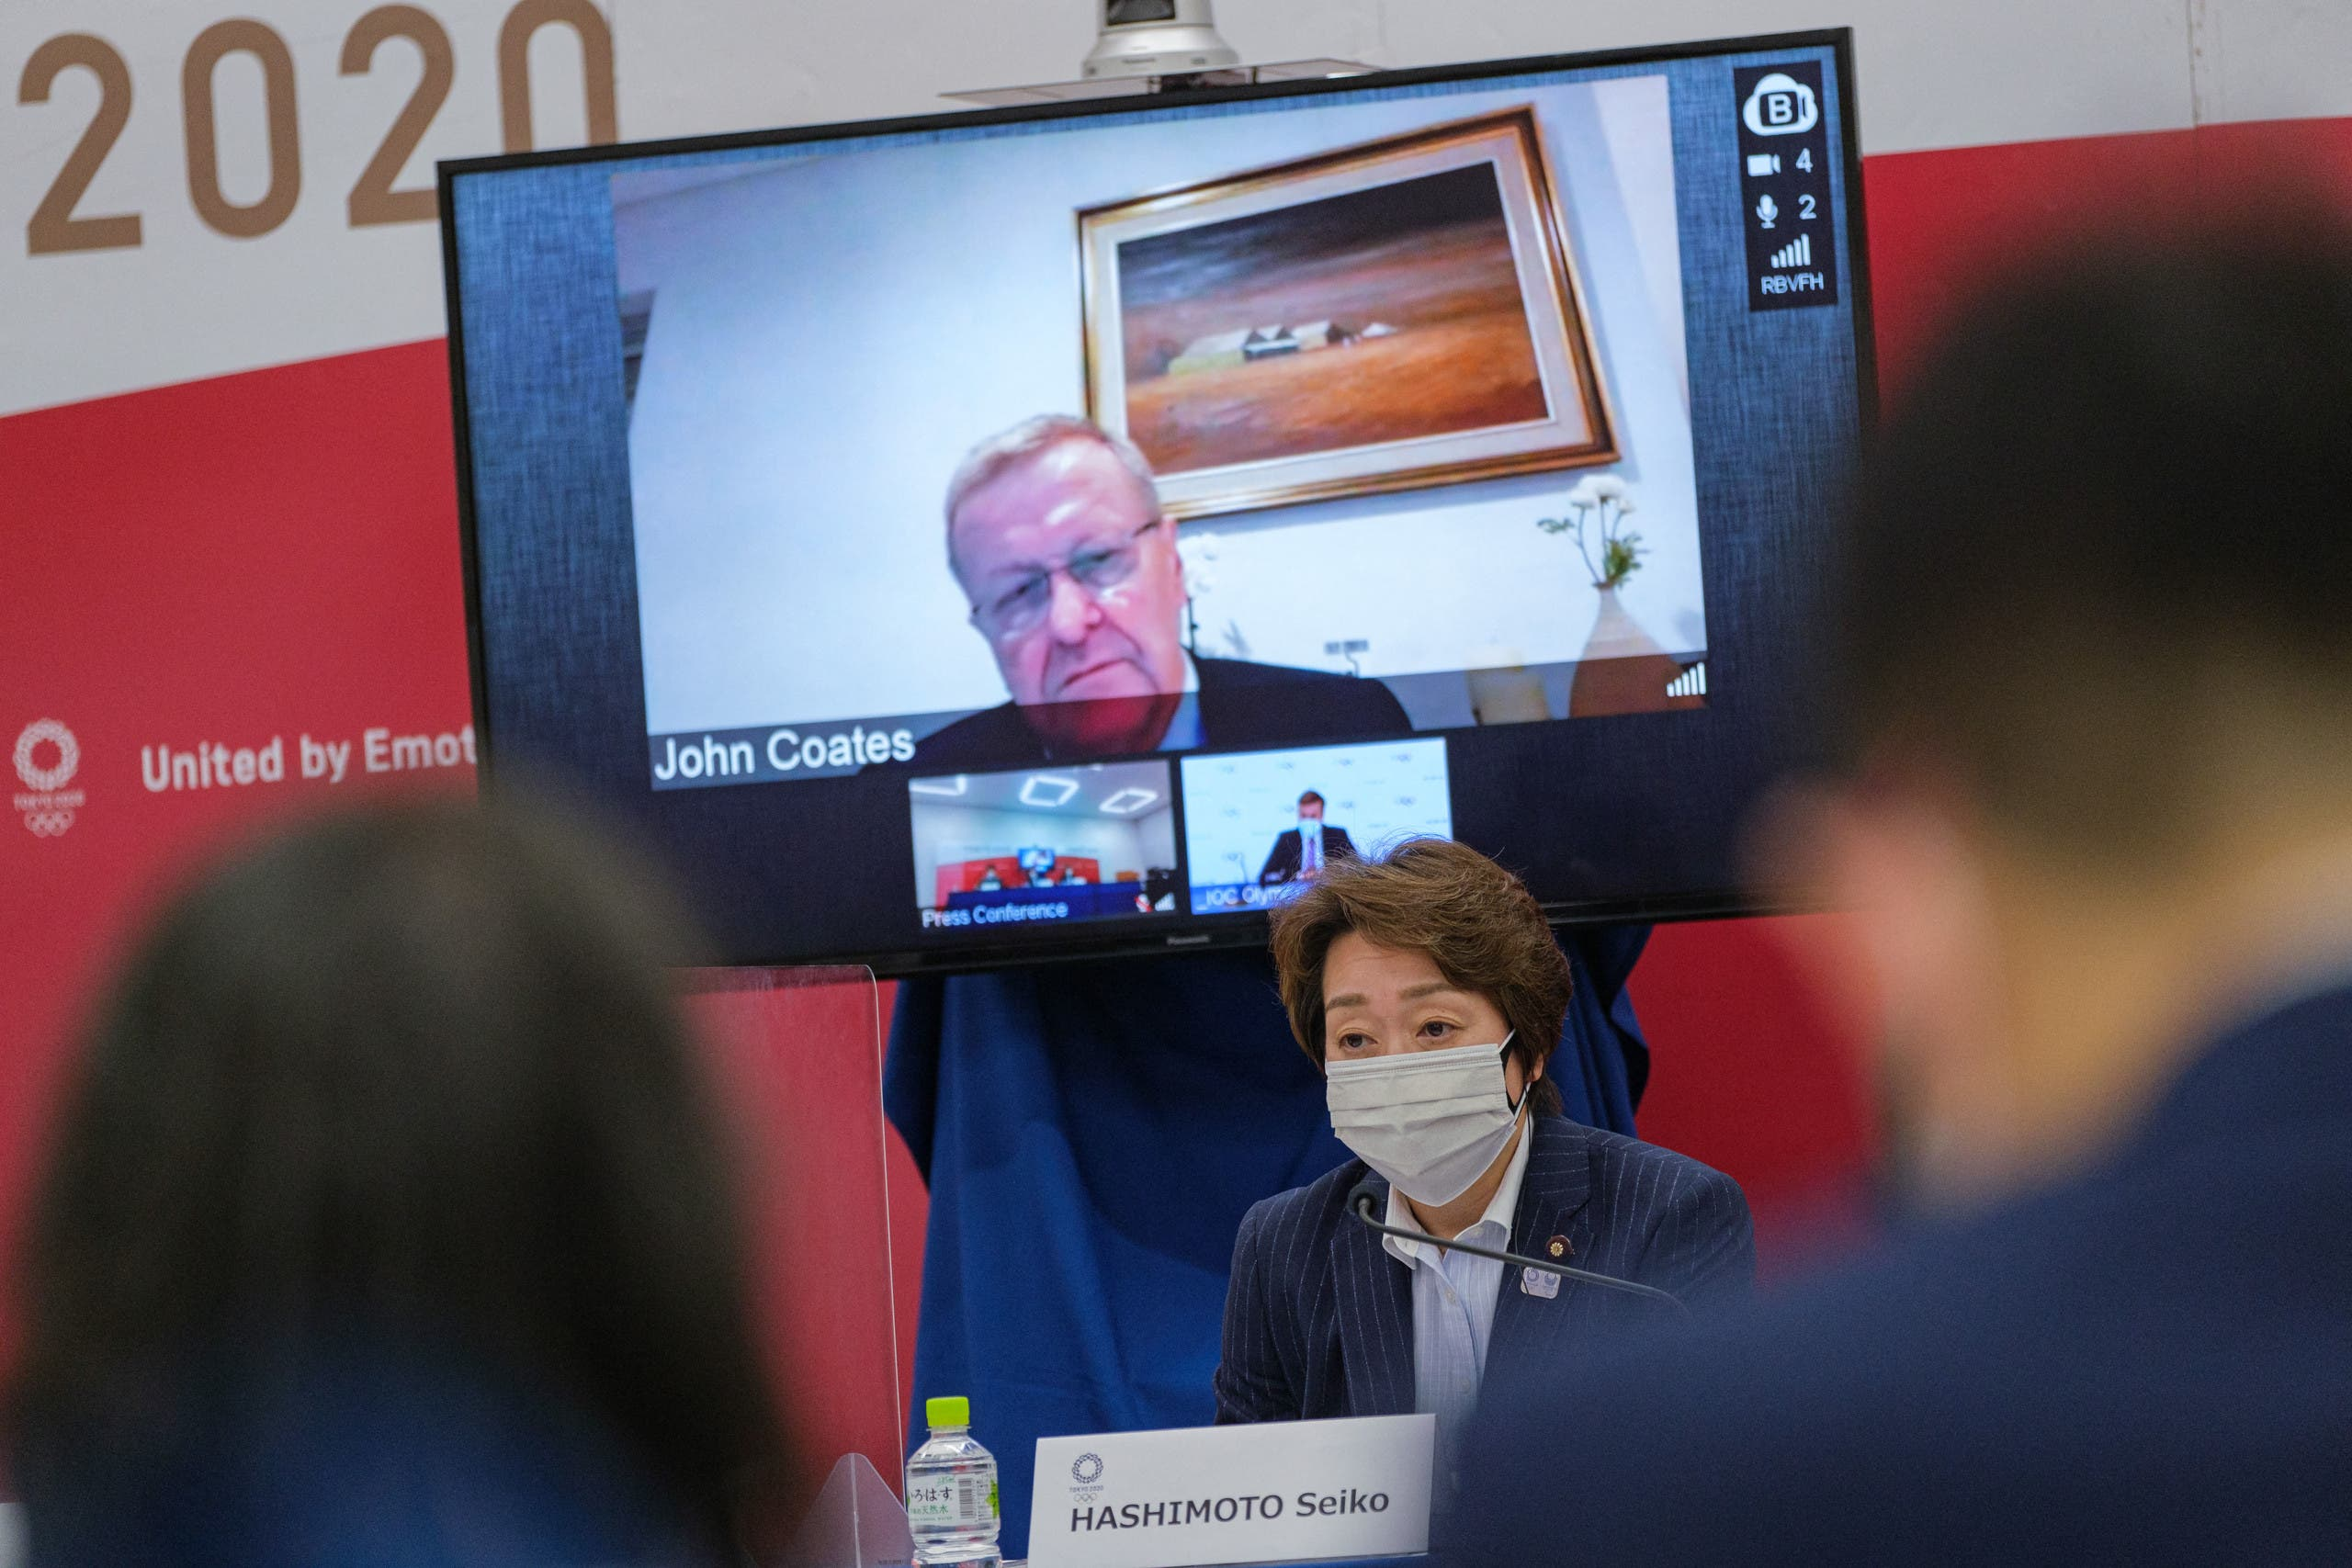 Tokyo 2020 CEO Toshiro Muto (L), Tokyo 2020 Olympics organising committee president Seiko Hashimoto (R) and International Olympic Committee (IOC) vice president John Coates (on screen) attend a Tokyo 2020 IOC Coordination Commission press conference in Tokyo on May 21, 2021. (File photo: AFP)